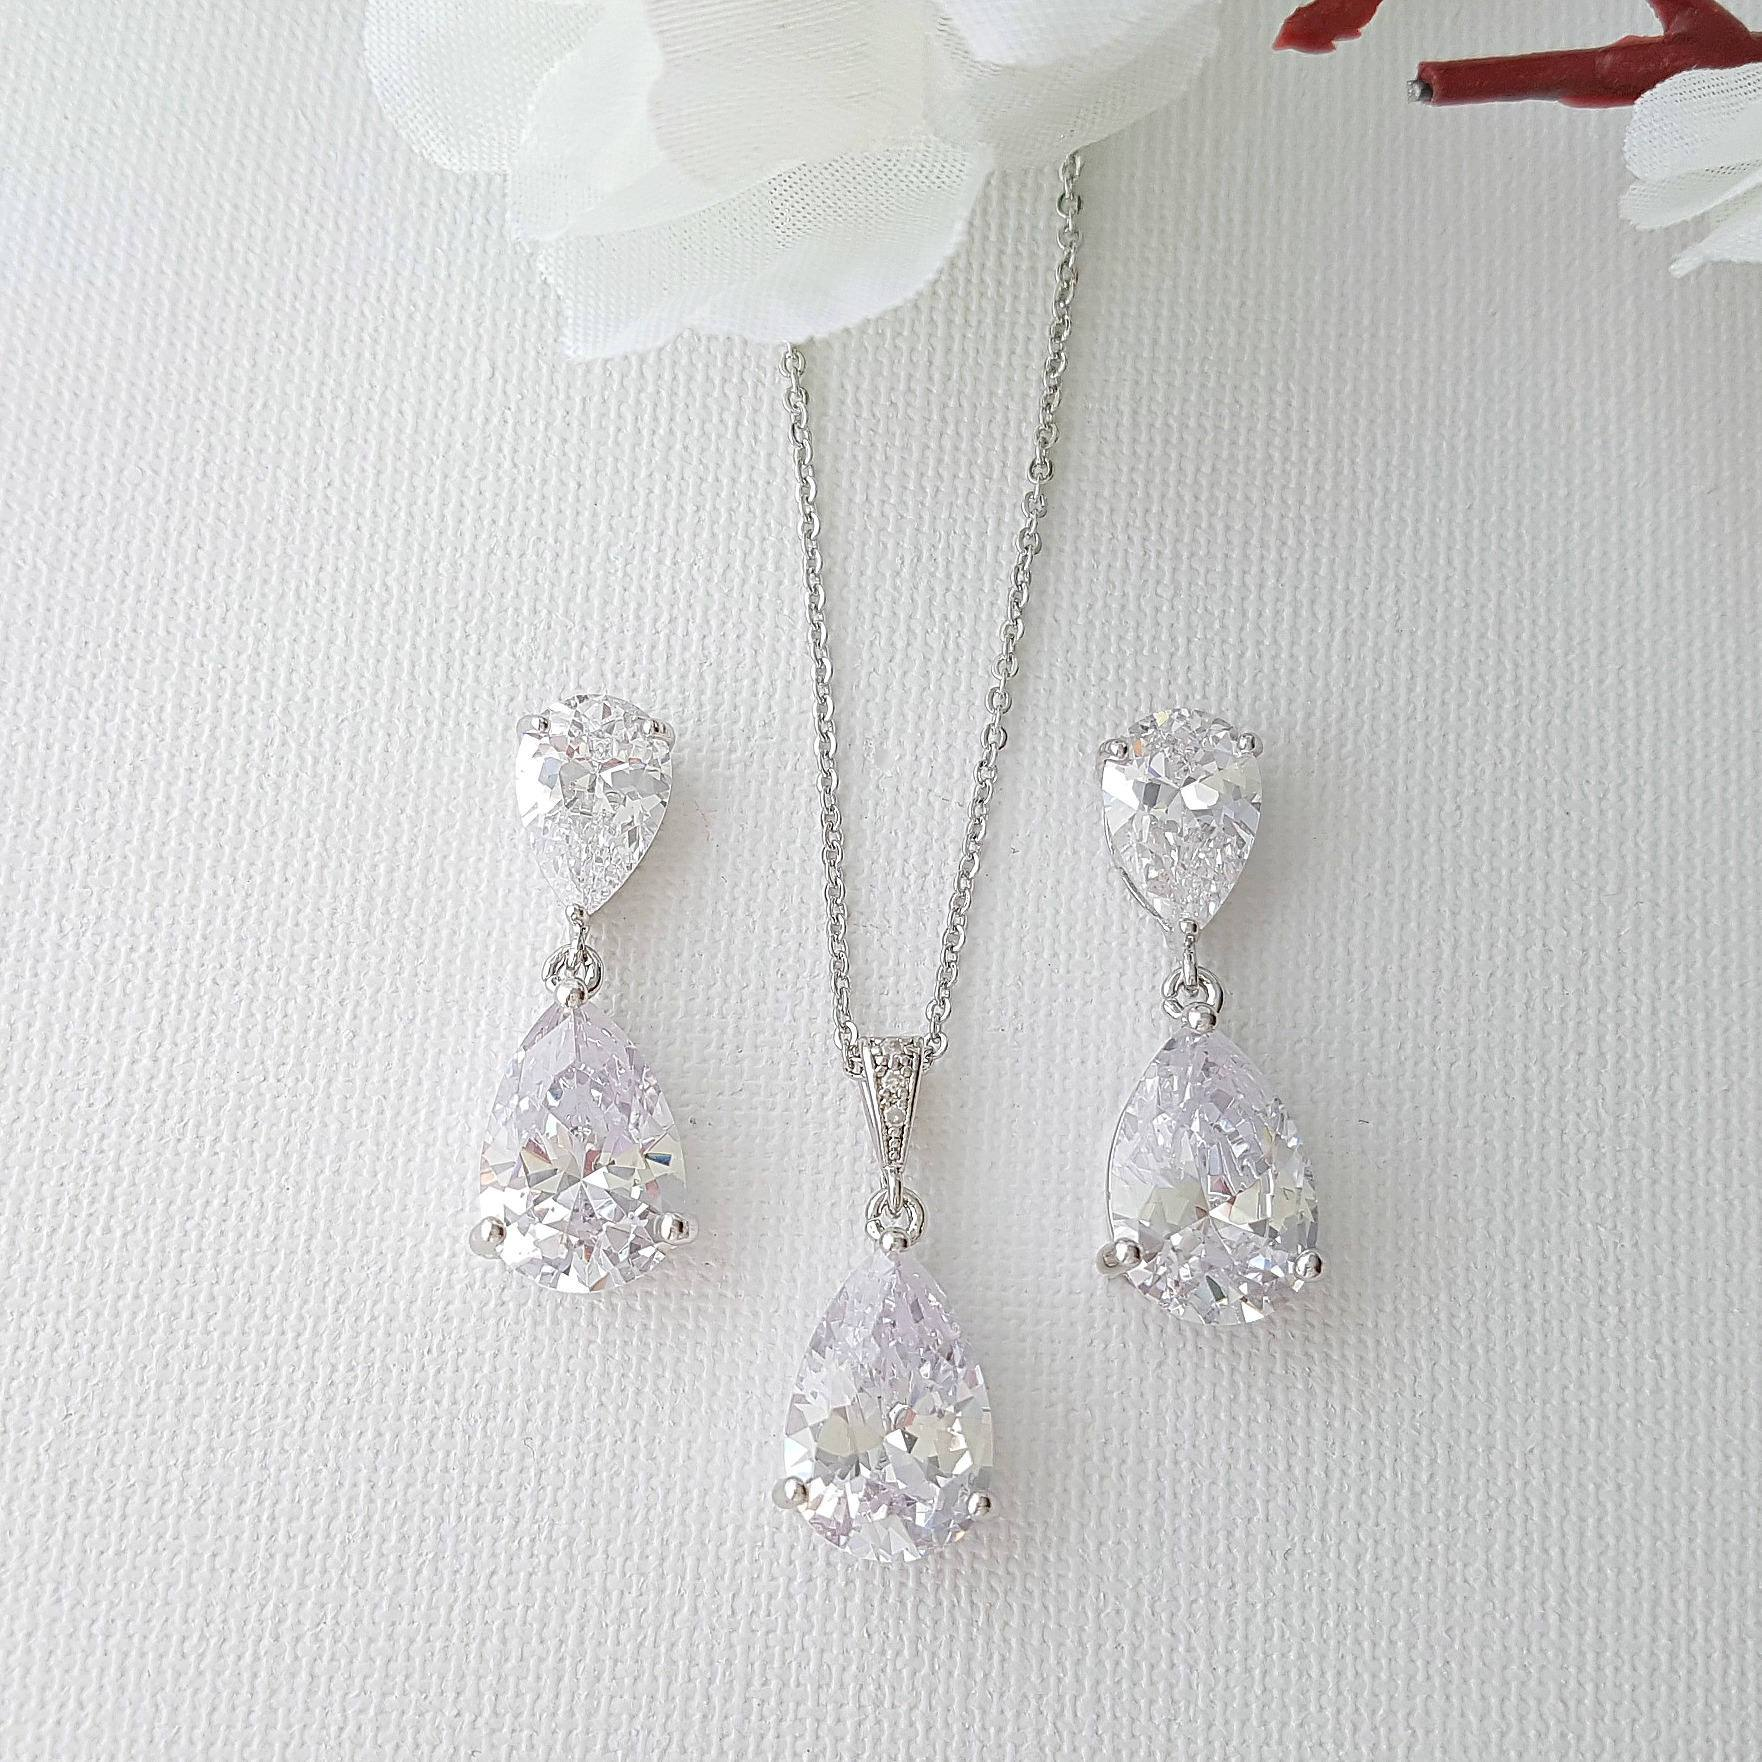 Crystal Bridal Jewelry Set , Crystal Earrings Necklace Set, Bridal Jewelry, Cubic Zirconia Jewelry Set, Rose Gold, Clara Set